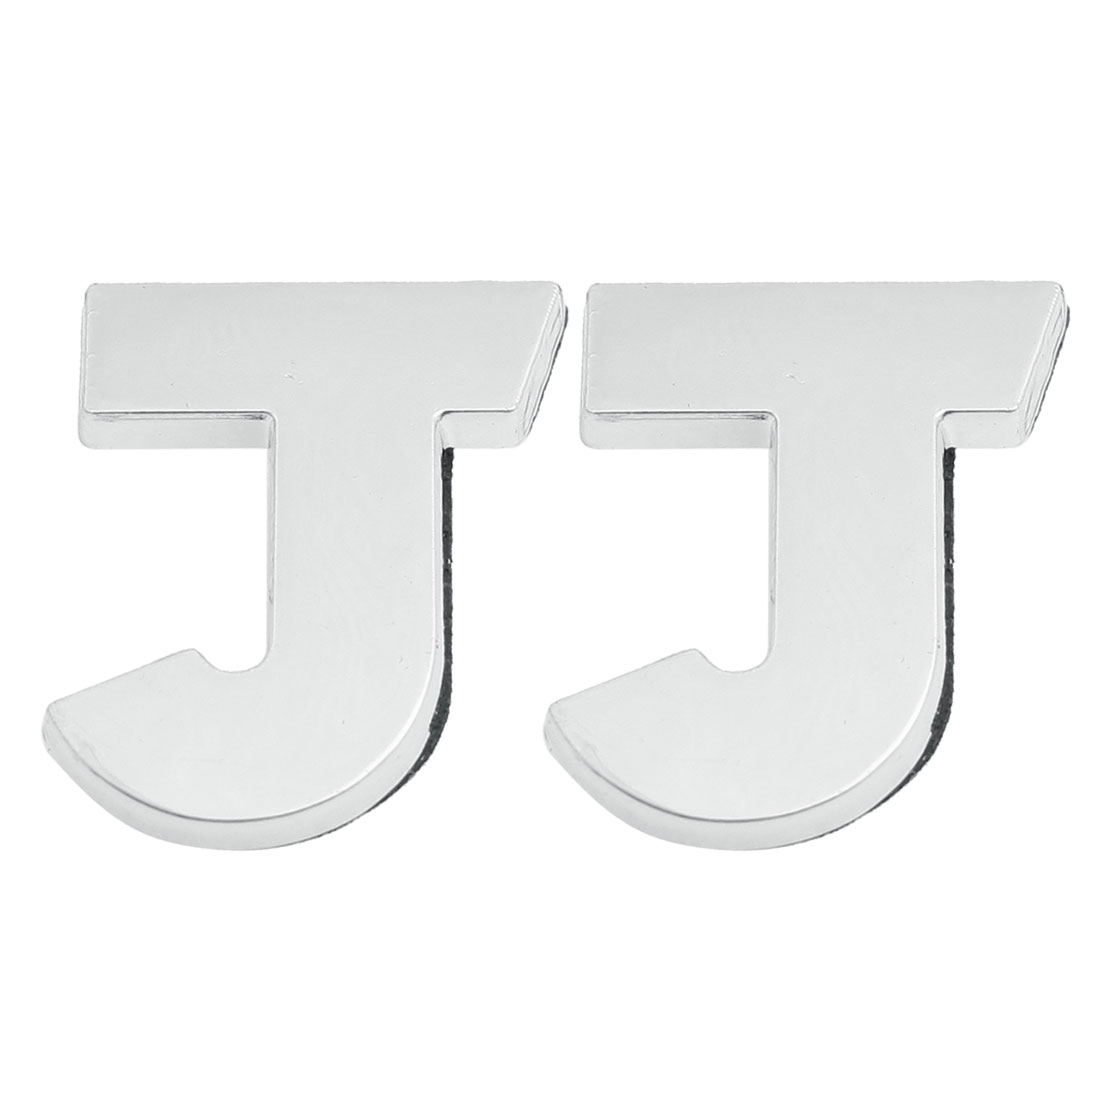 2 Pcs Adhesive Plastic Letter J Car 3D Emblem Badge Decoration Silver Tone